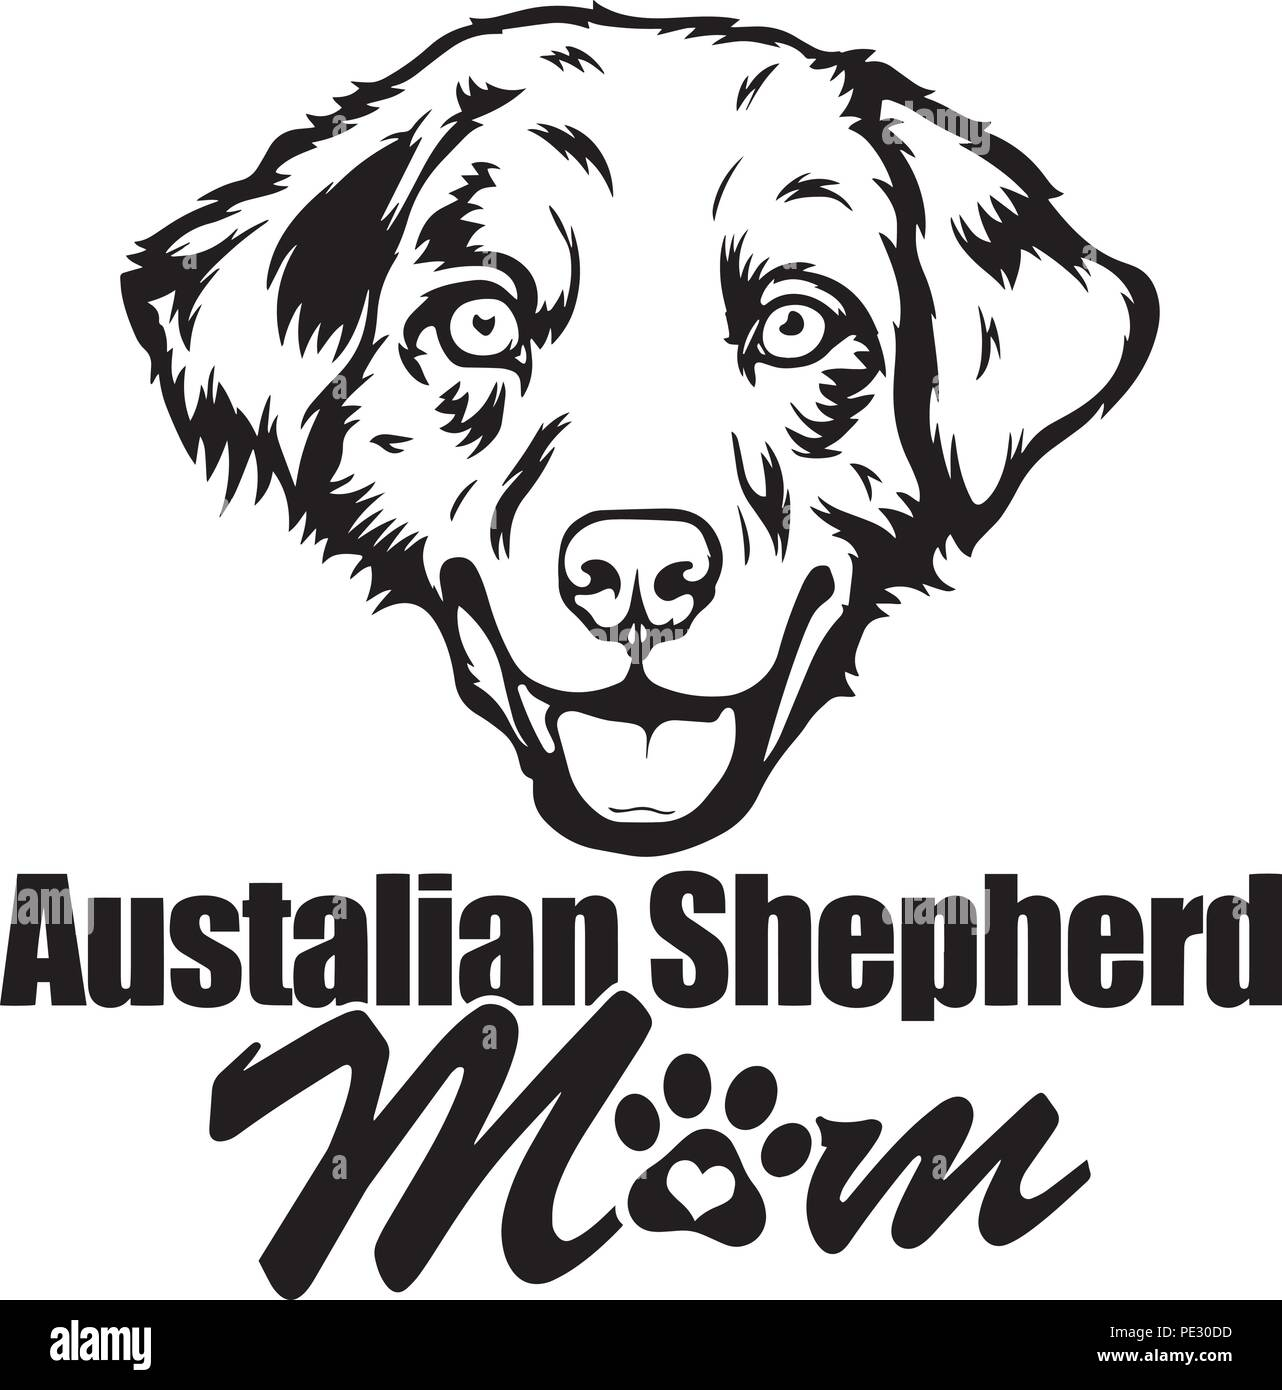 Australian Shepherd Dog Breed Pet Puppy Isolated Head Face Stock